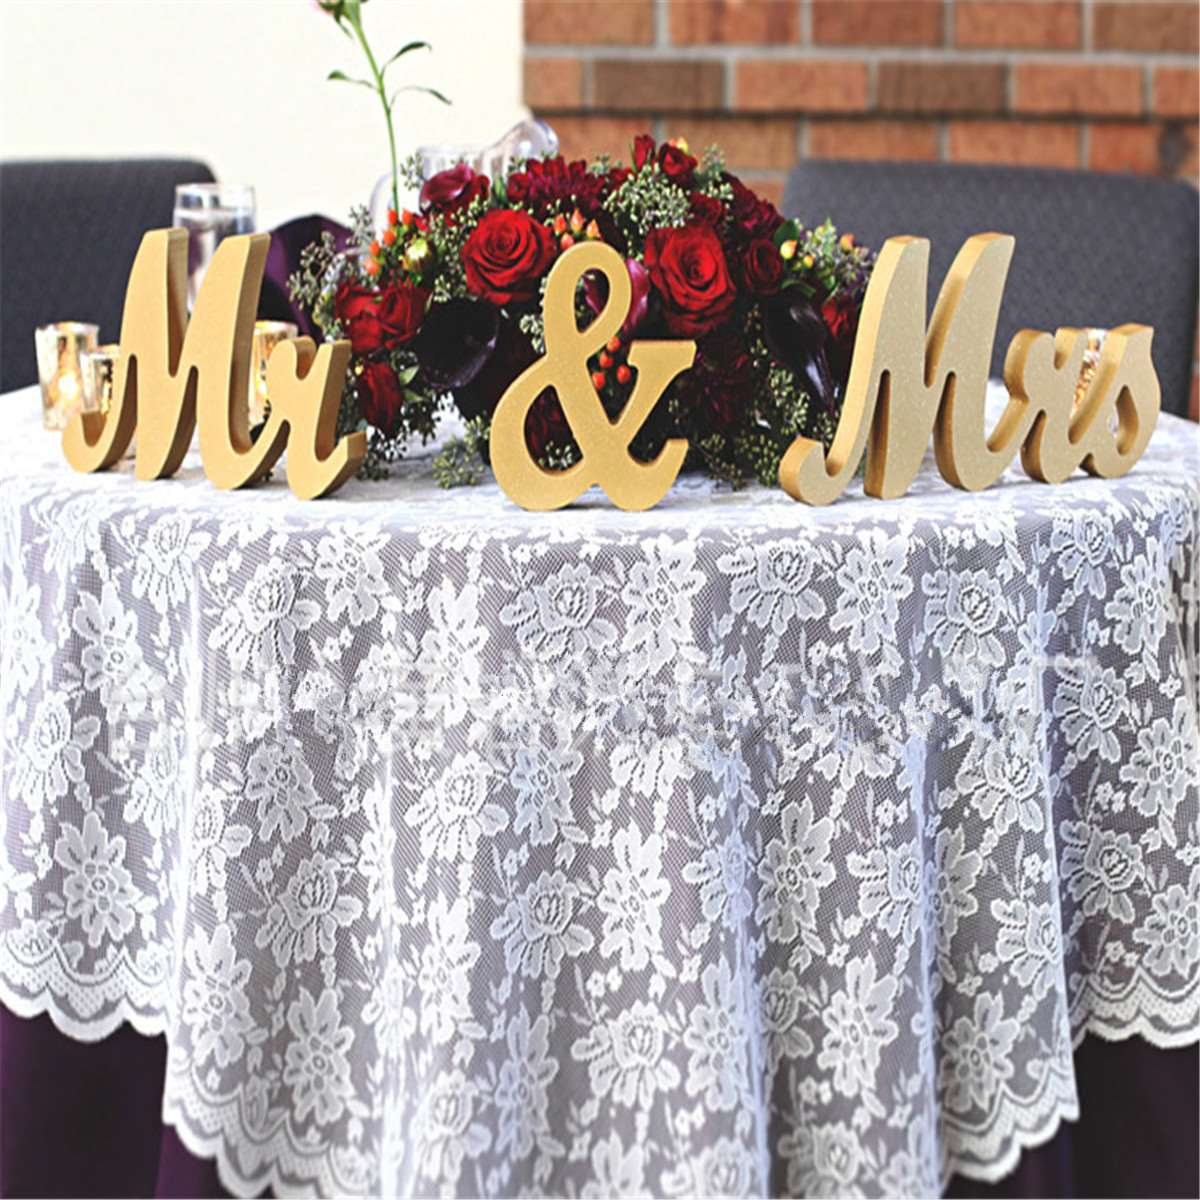 Gold Wooden Mr & Mrs Standing Letters Wedding Table Centrepiece Reception Sign Party Wedding Decoration Party Supplies(China (Mainland))